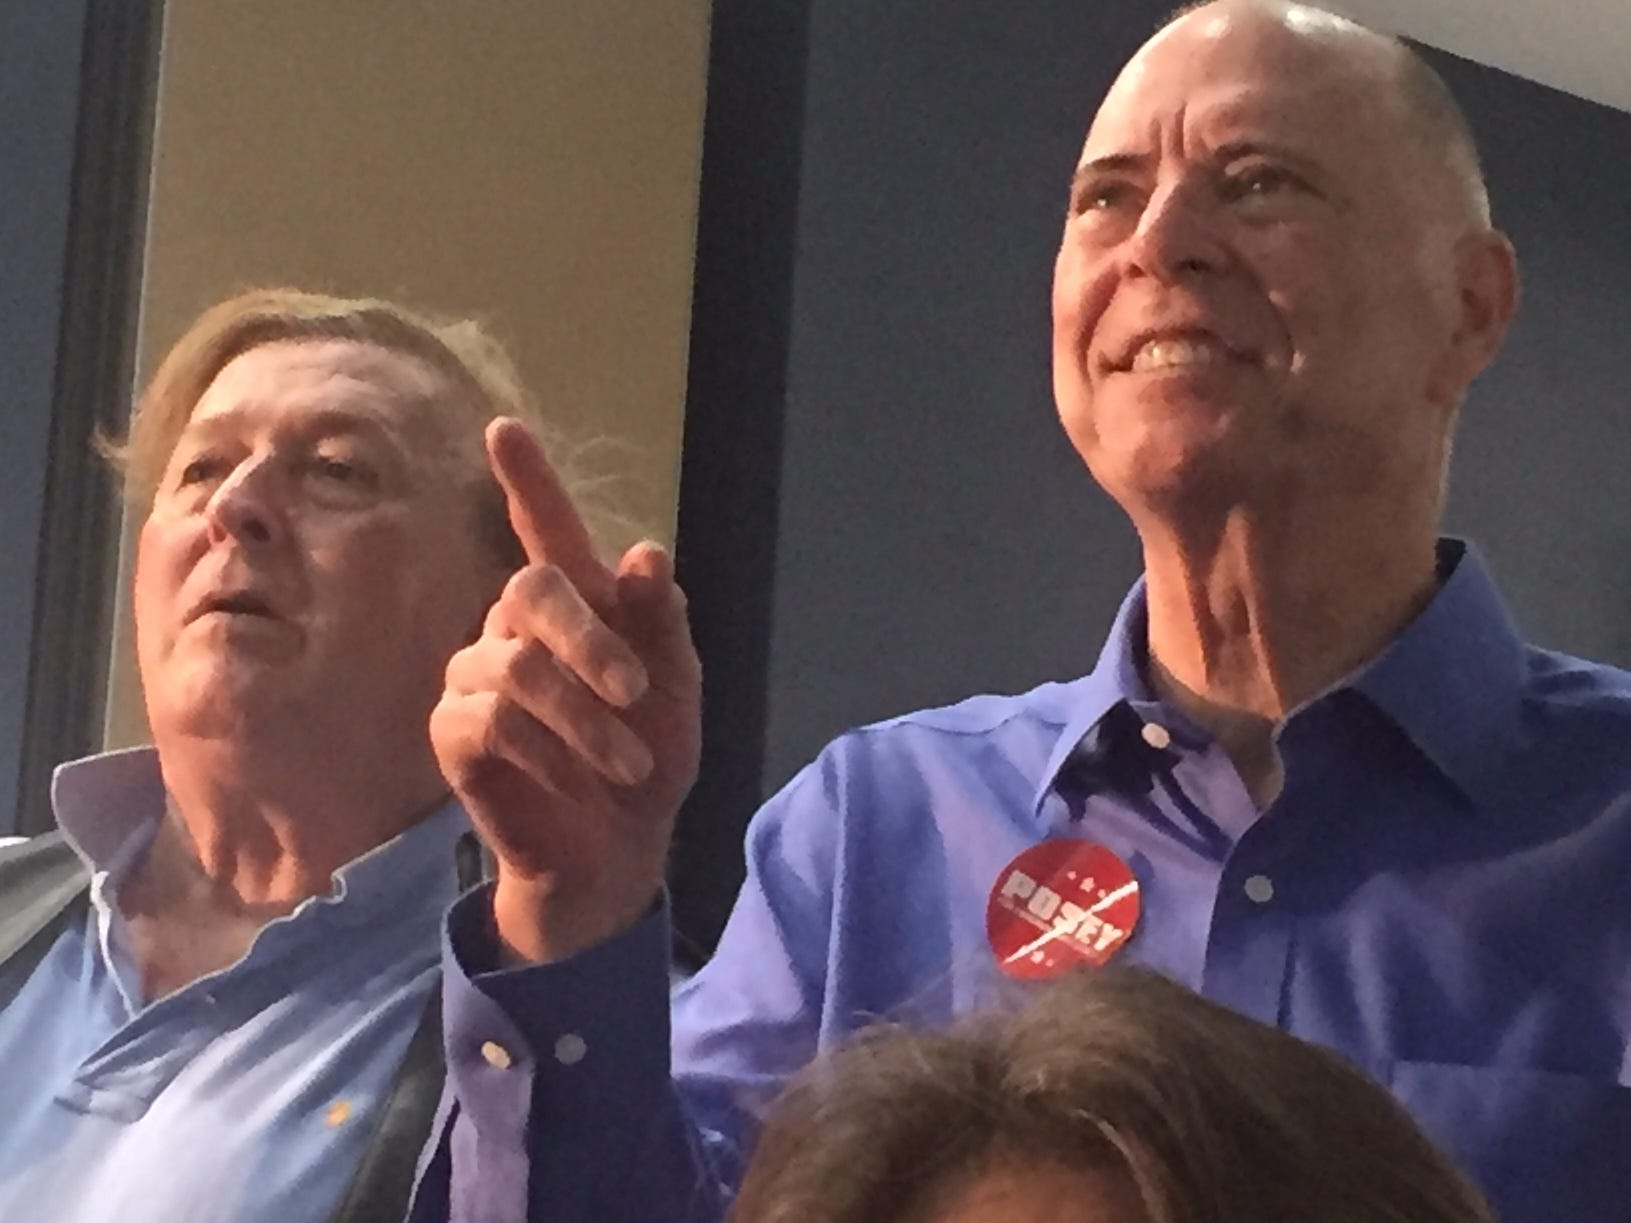 Rep. Bill Posey, District 8, views  election results with supporters at a watch party at Holiday Inn in Viera.